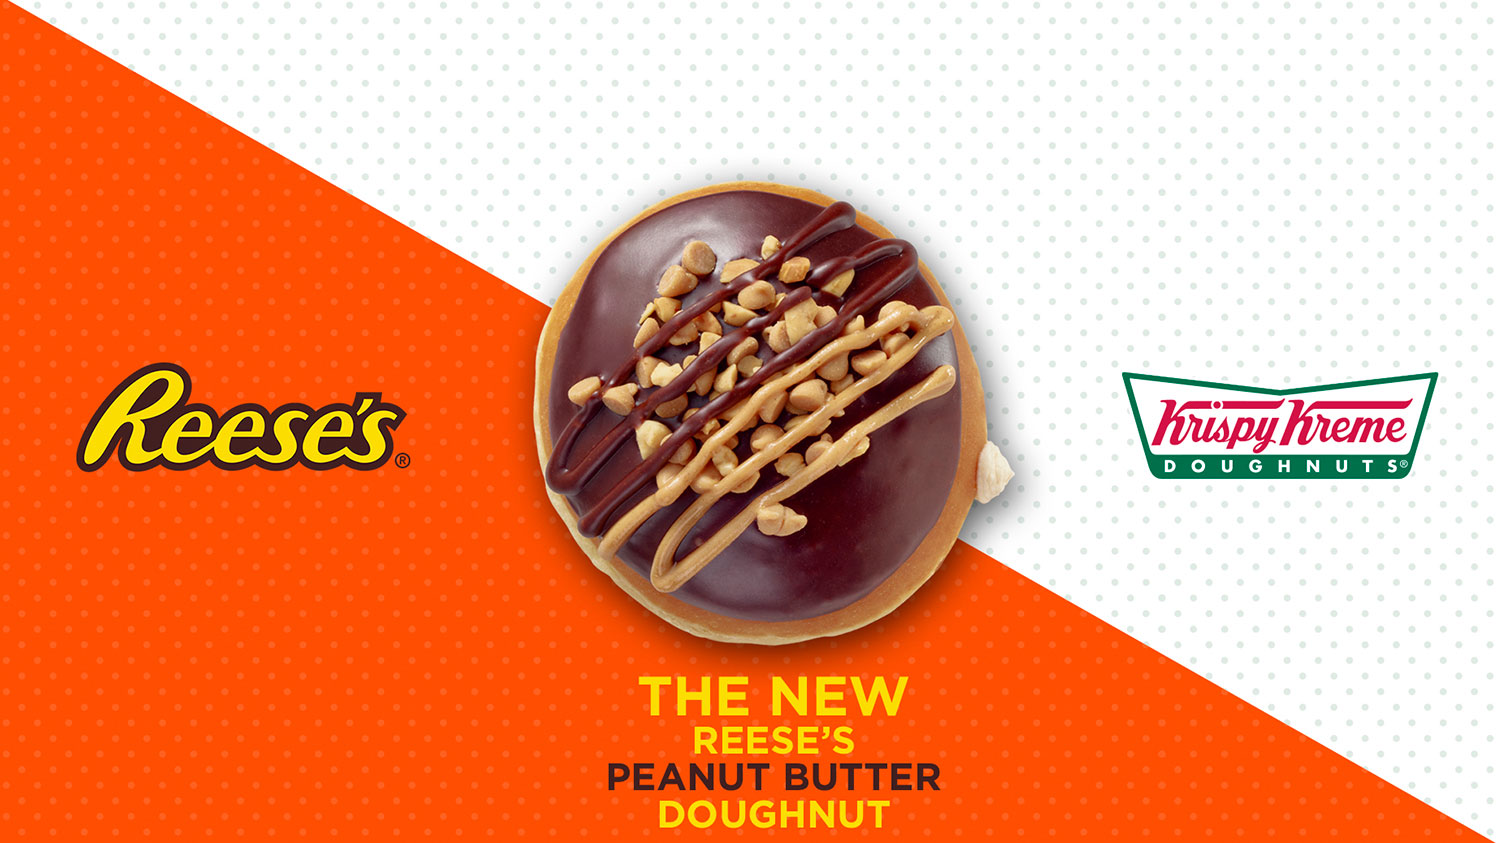 reese's doughnut partnered with krispy kreme